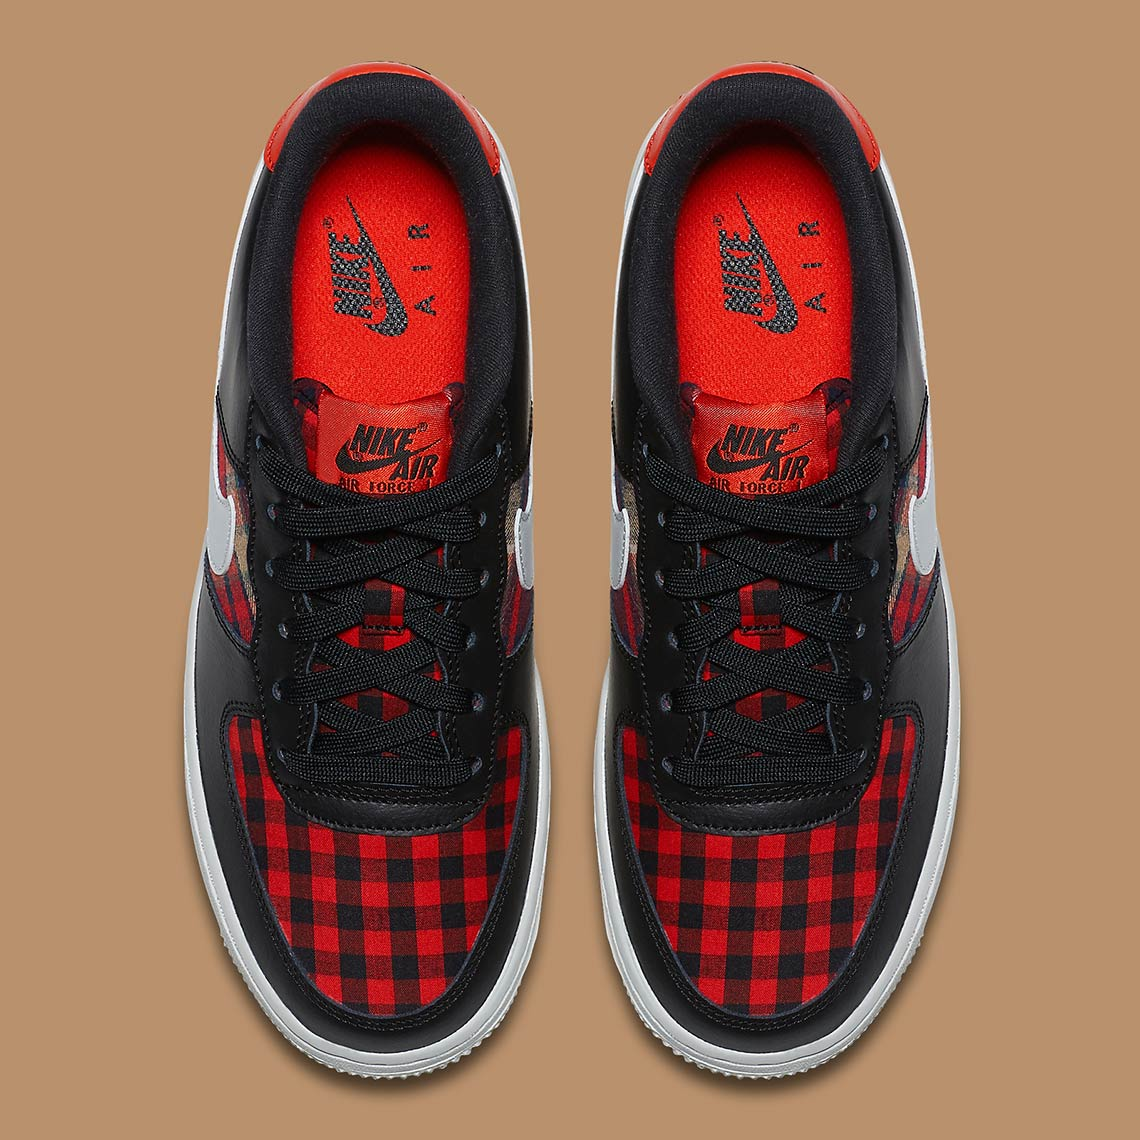 promo code fab3d 114e8 Nike Air Force 1 Low Flannel 849345-004 Release Info  Sneake